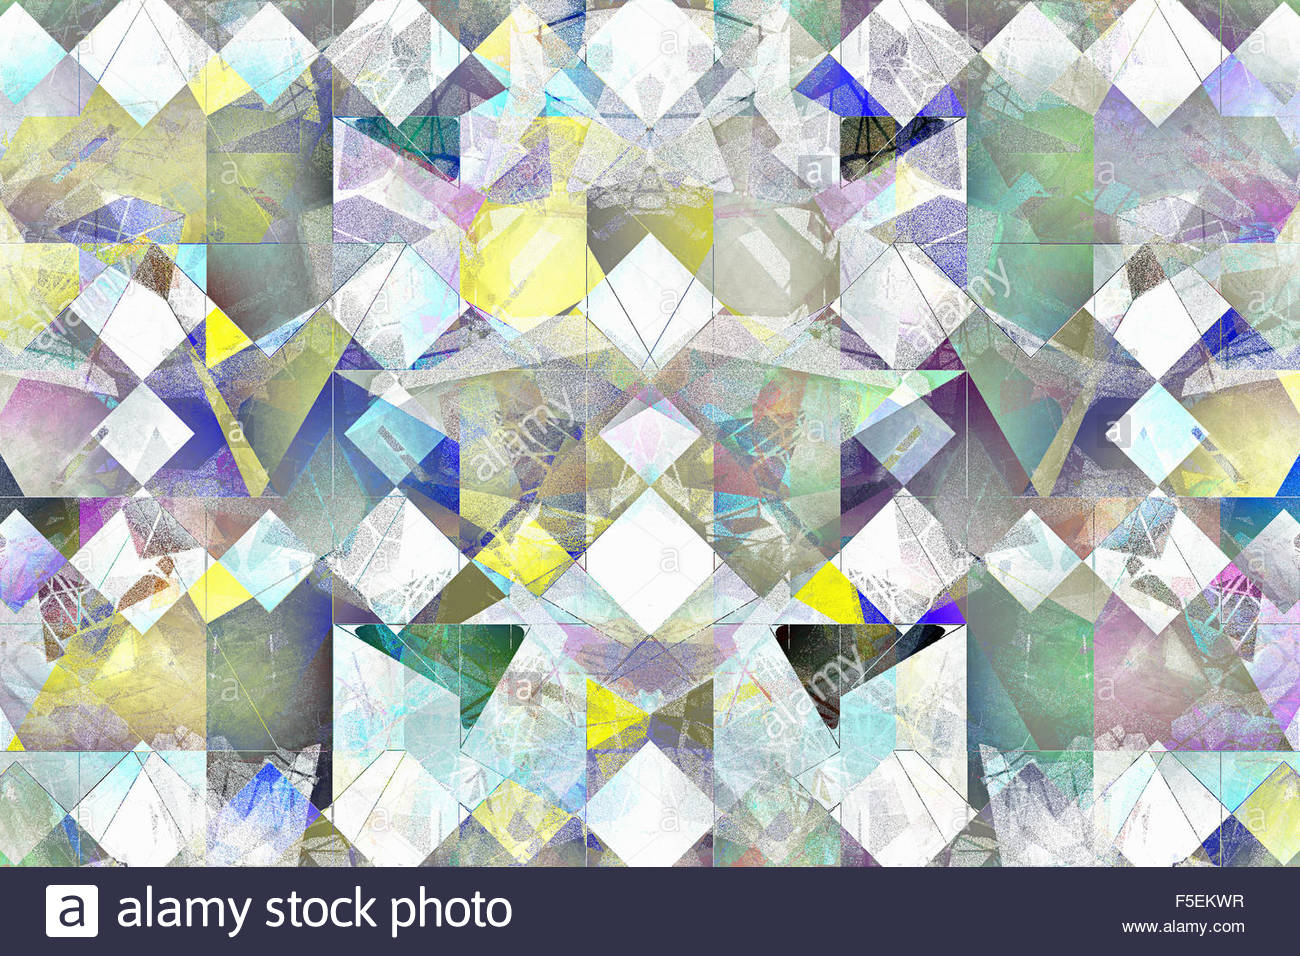 Multi-layered abstract tile pattern - Stock Image